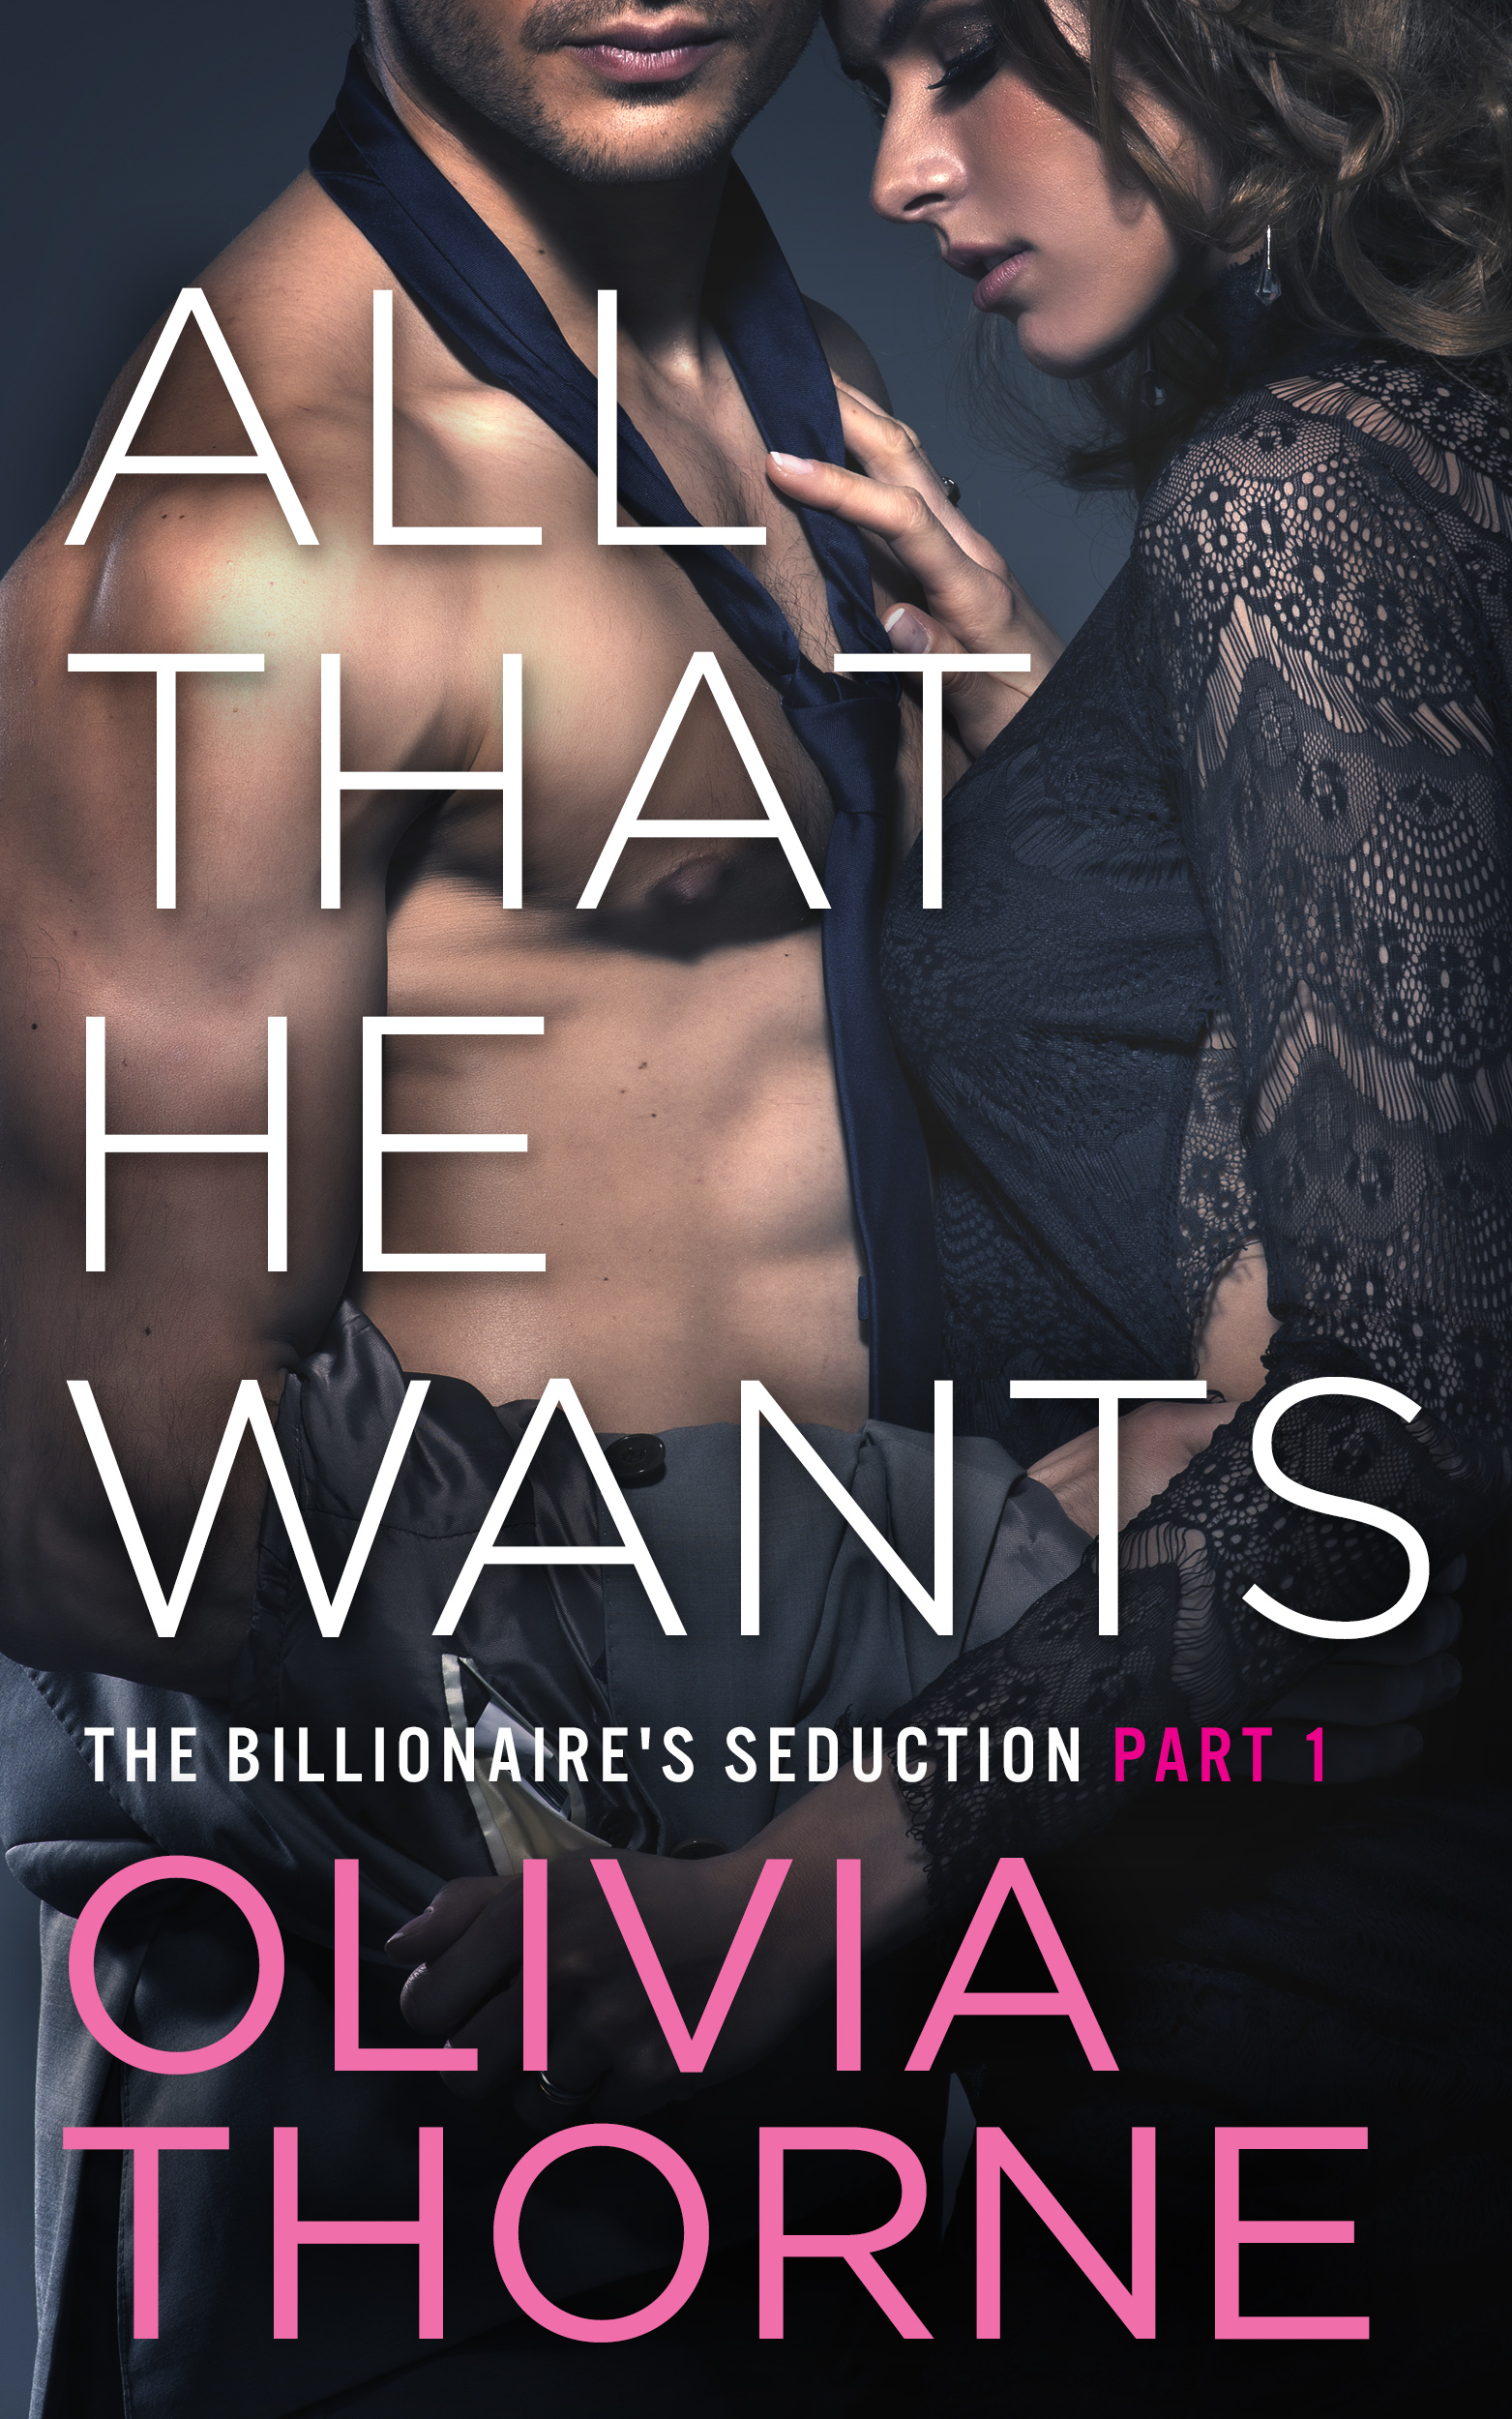 Olivia Thorne - All That He Wants (The Billionaire's Seduction Part 1)